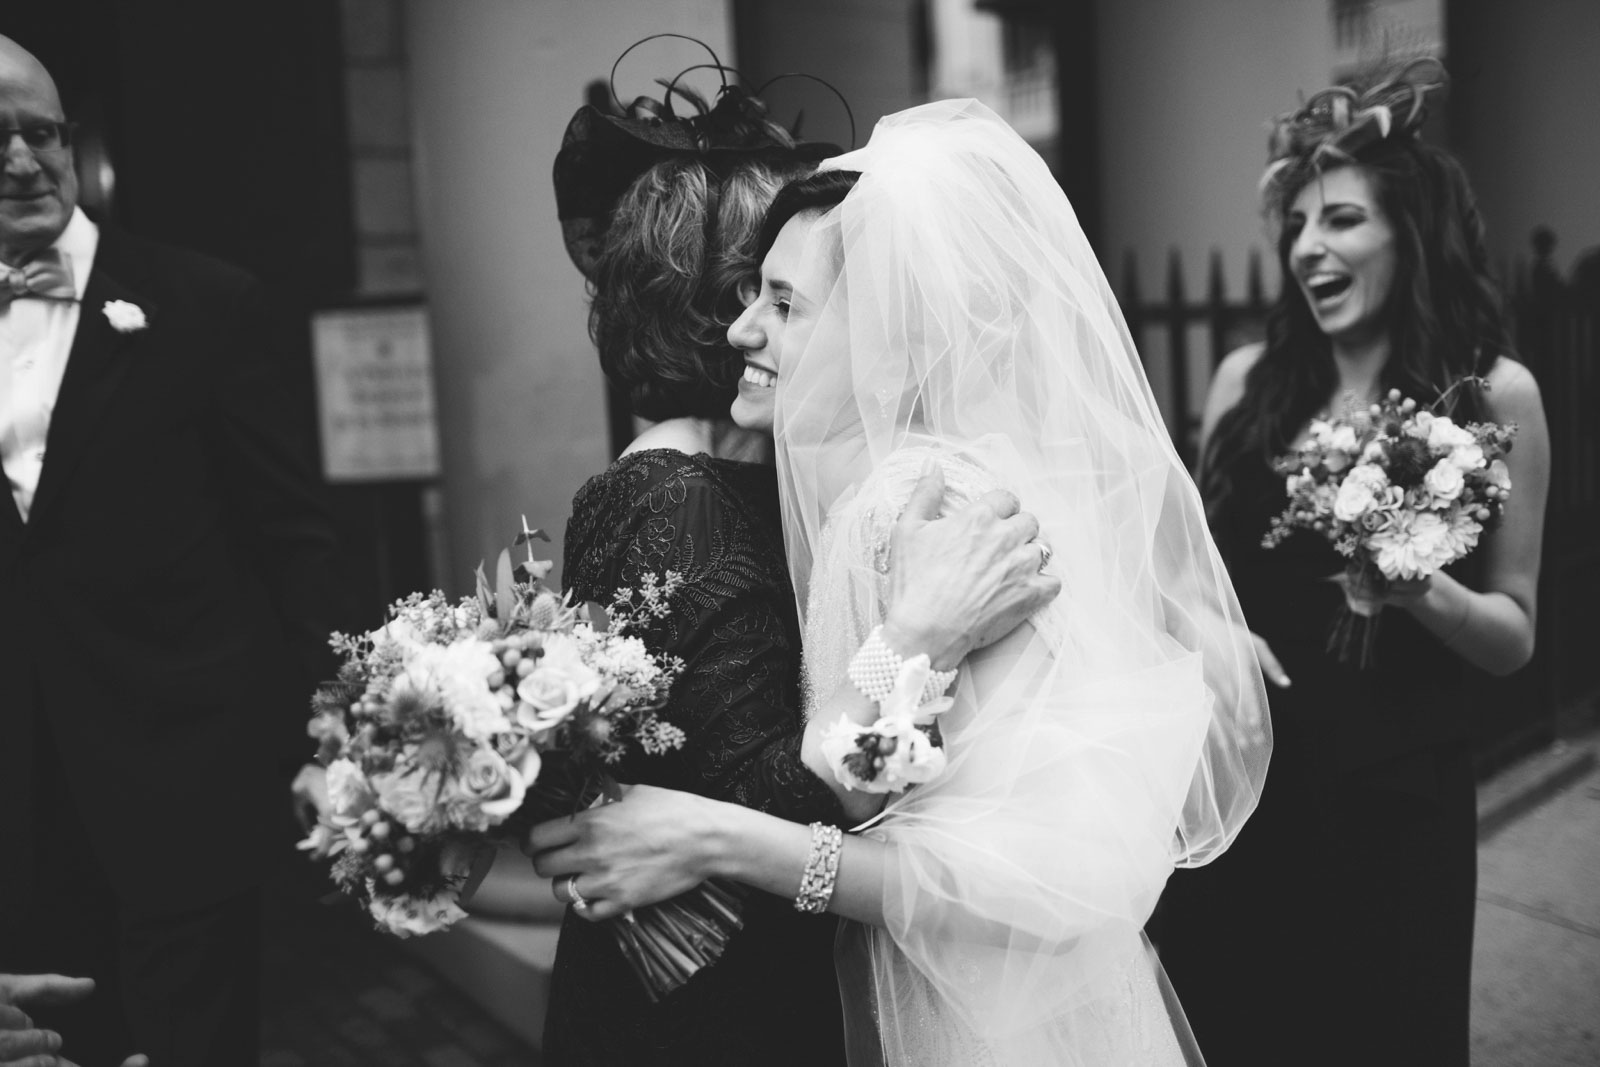 intimate candid shot of bride smiling and hugging mother of bride after wedding ceremony